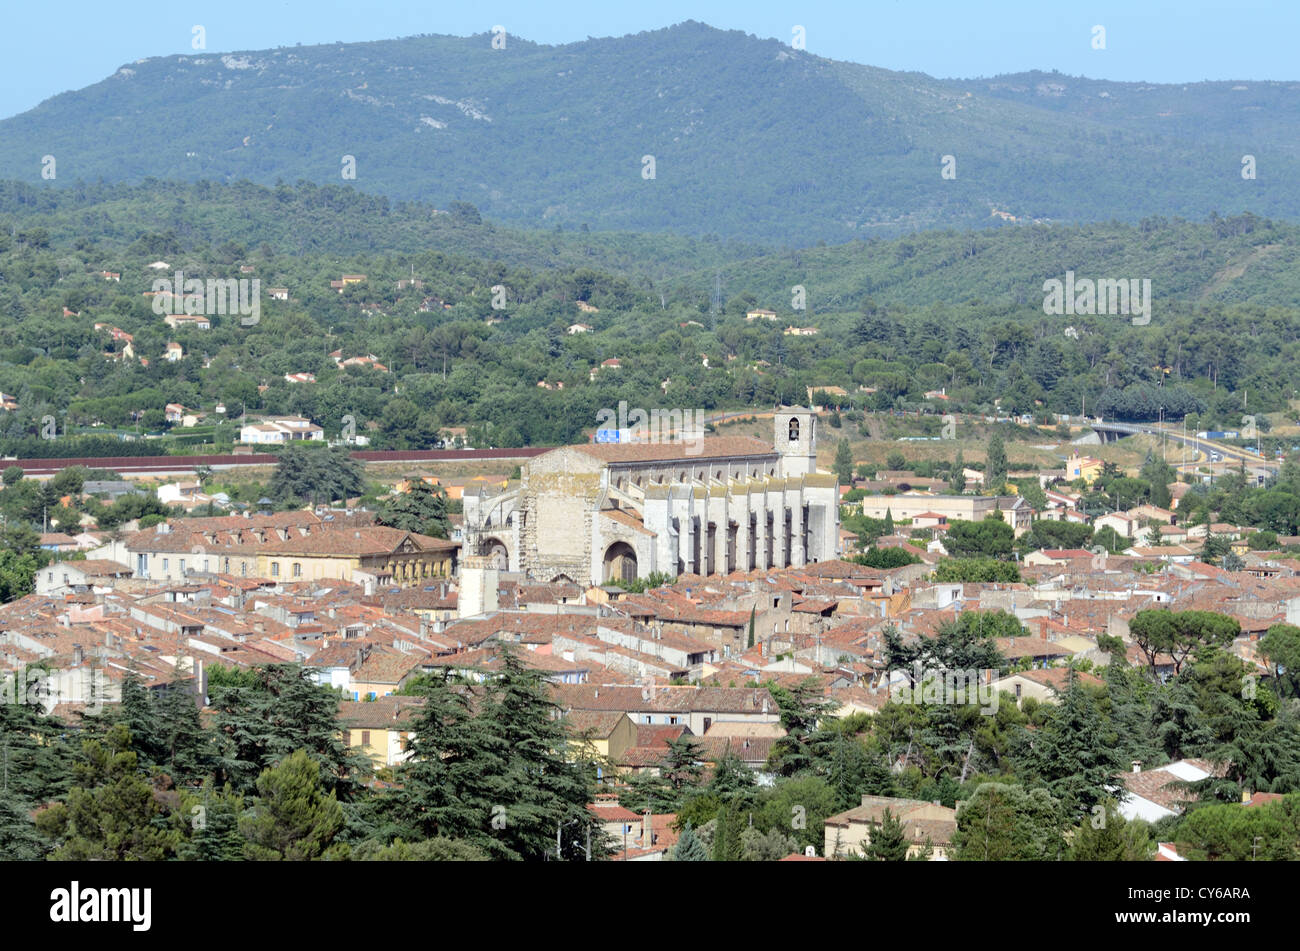 Panoramic View of the Basilica or Church of Mary Magdalene Saint-Maximin-la-Sainte-Baume Var Provence France - Stock Image